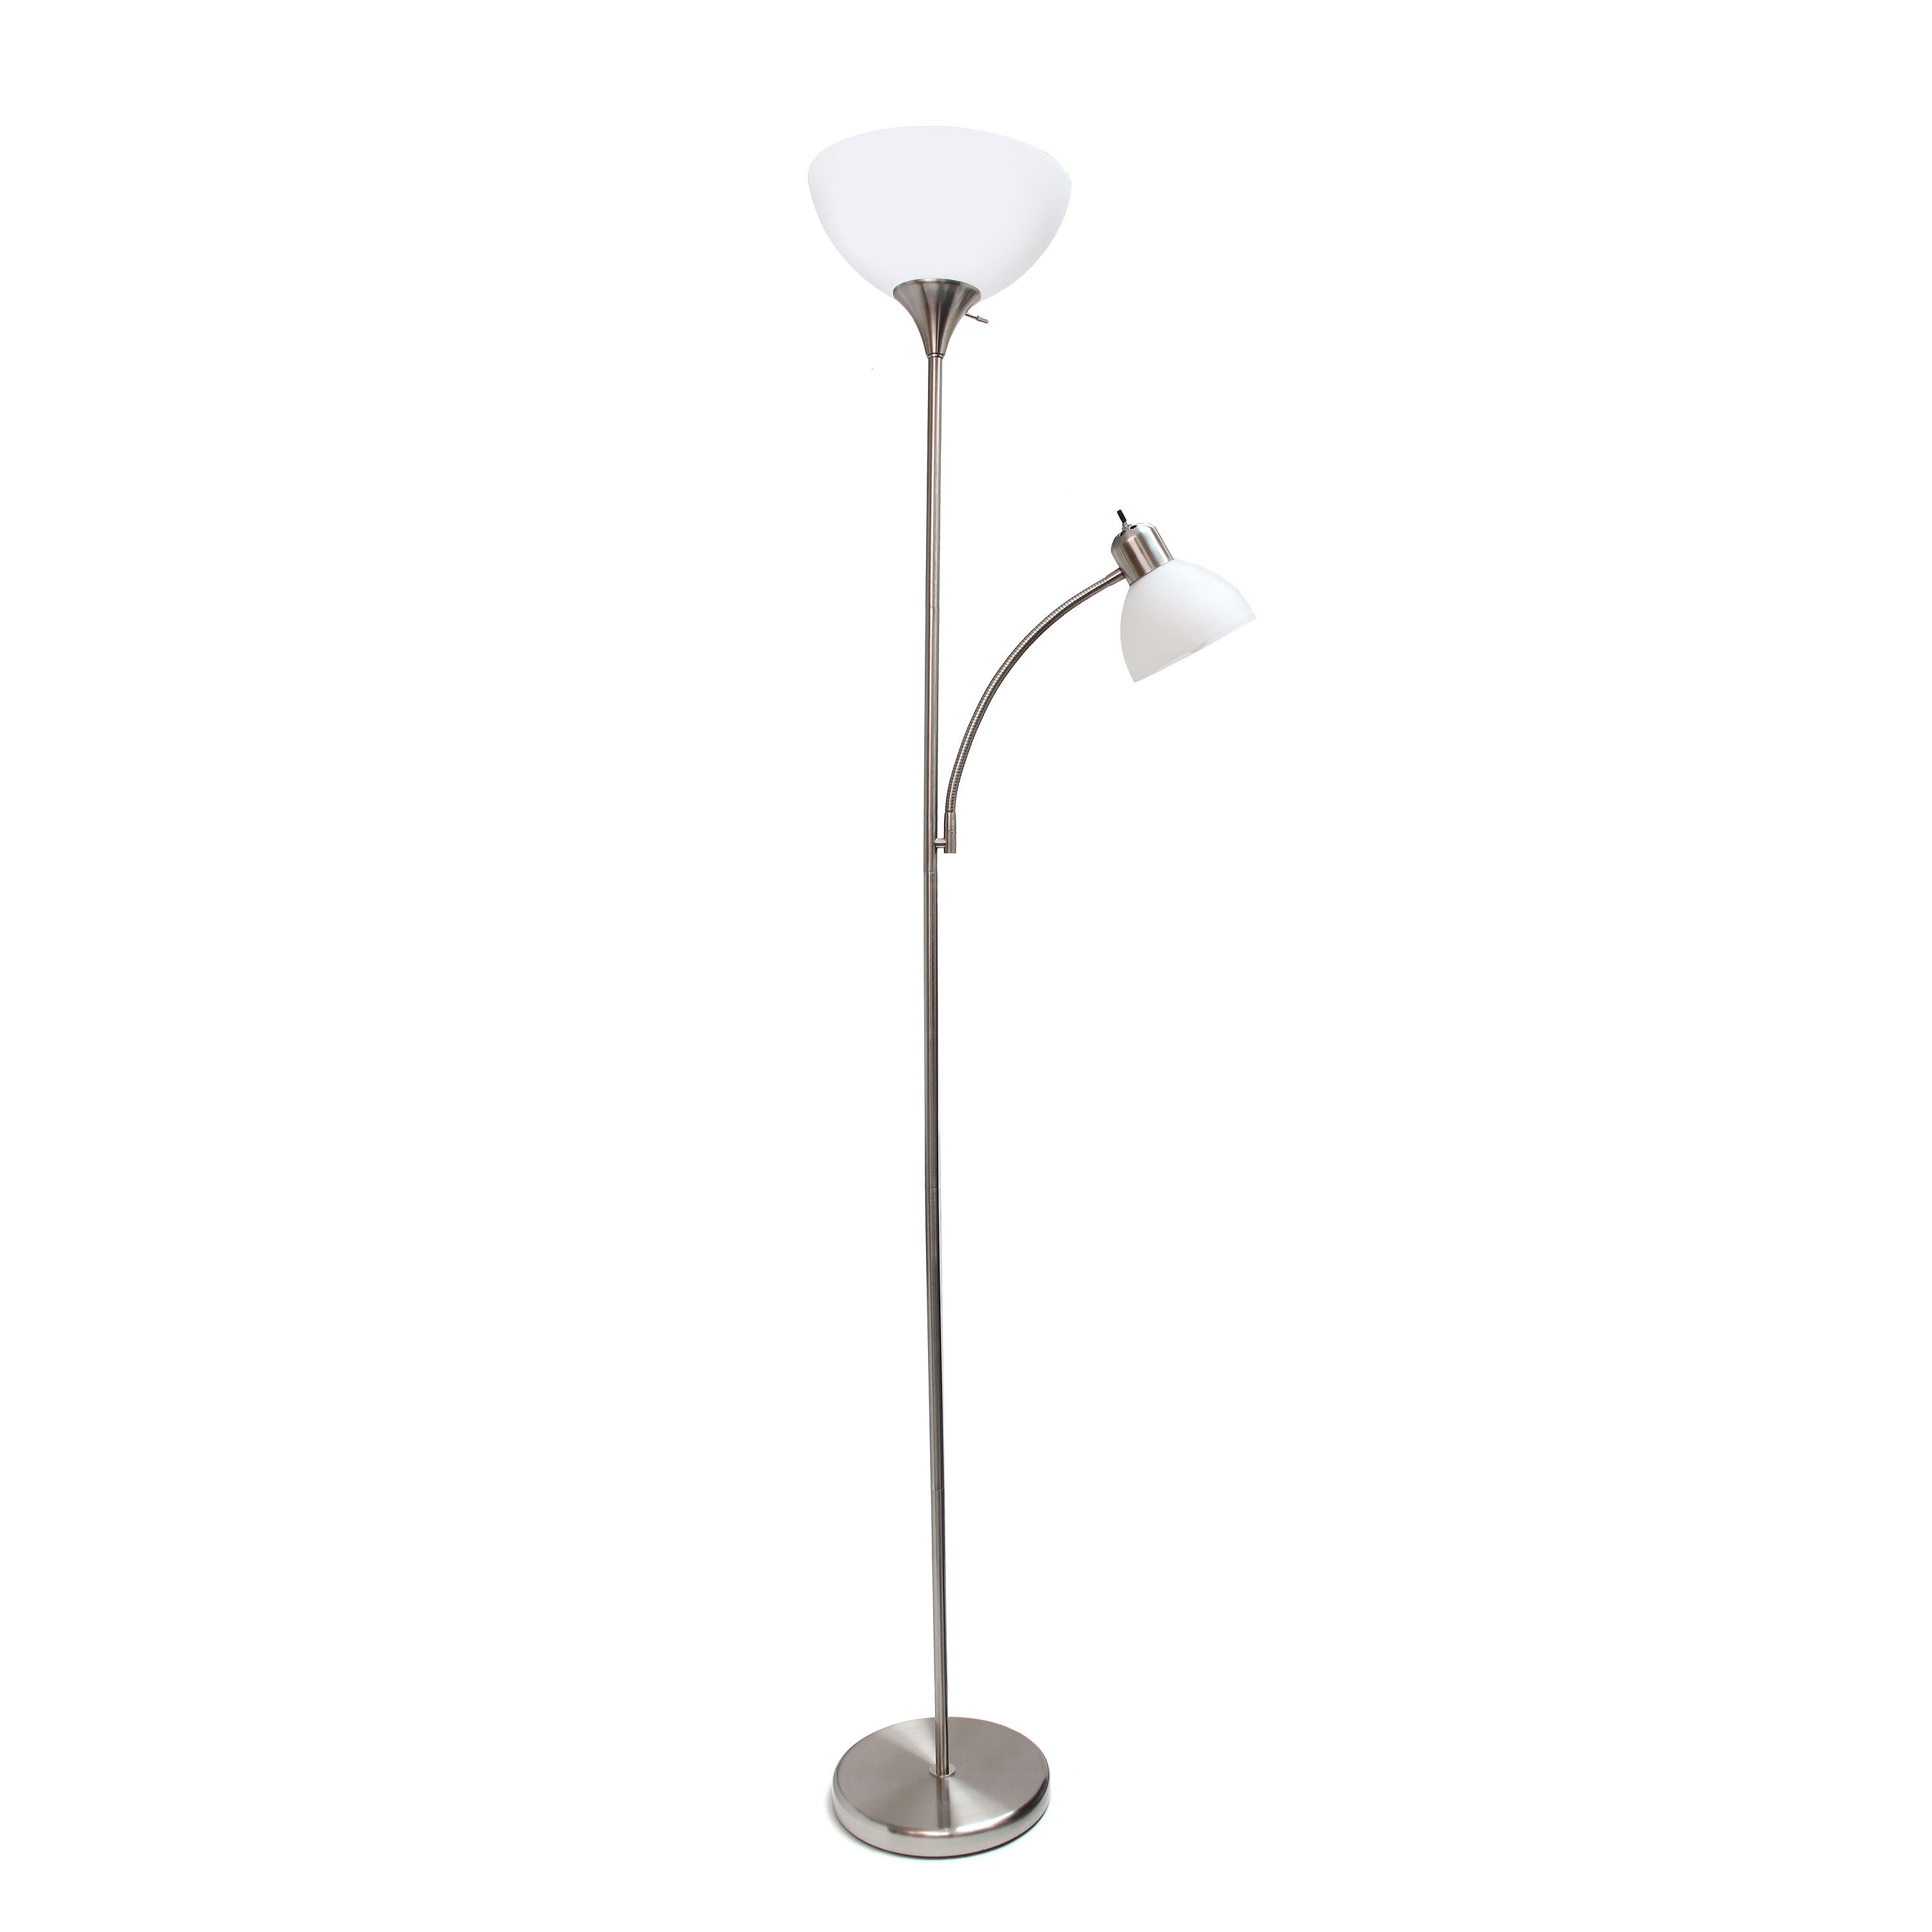 Simple Designs Floor Lamp with Reading Light, Brushed Nickel